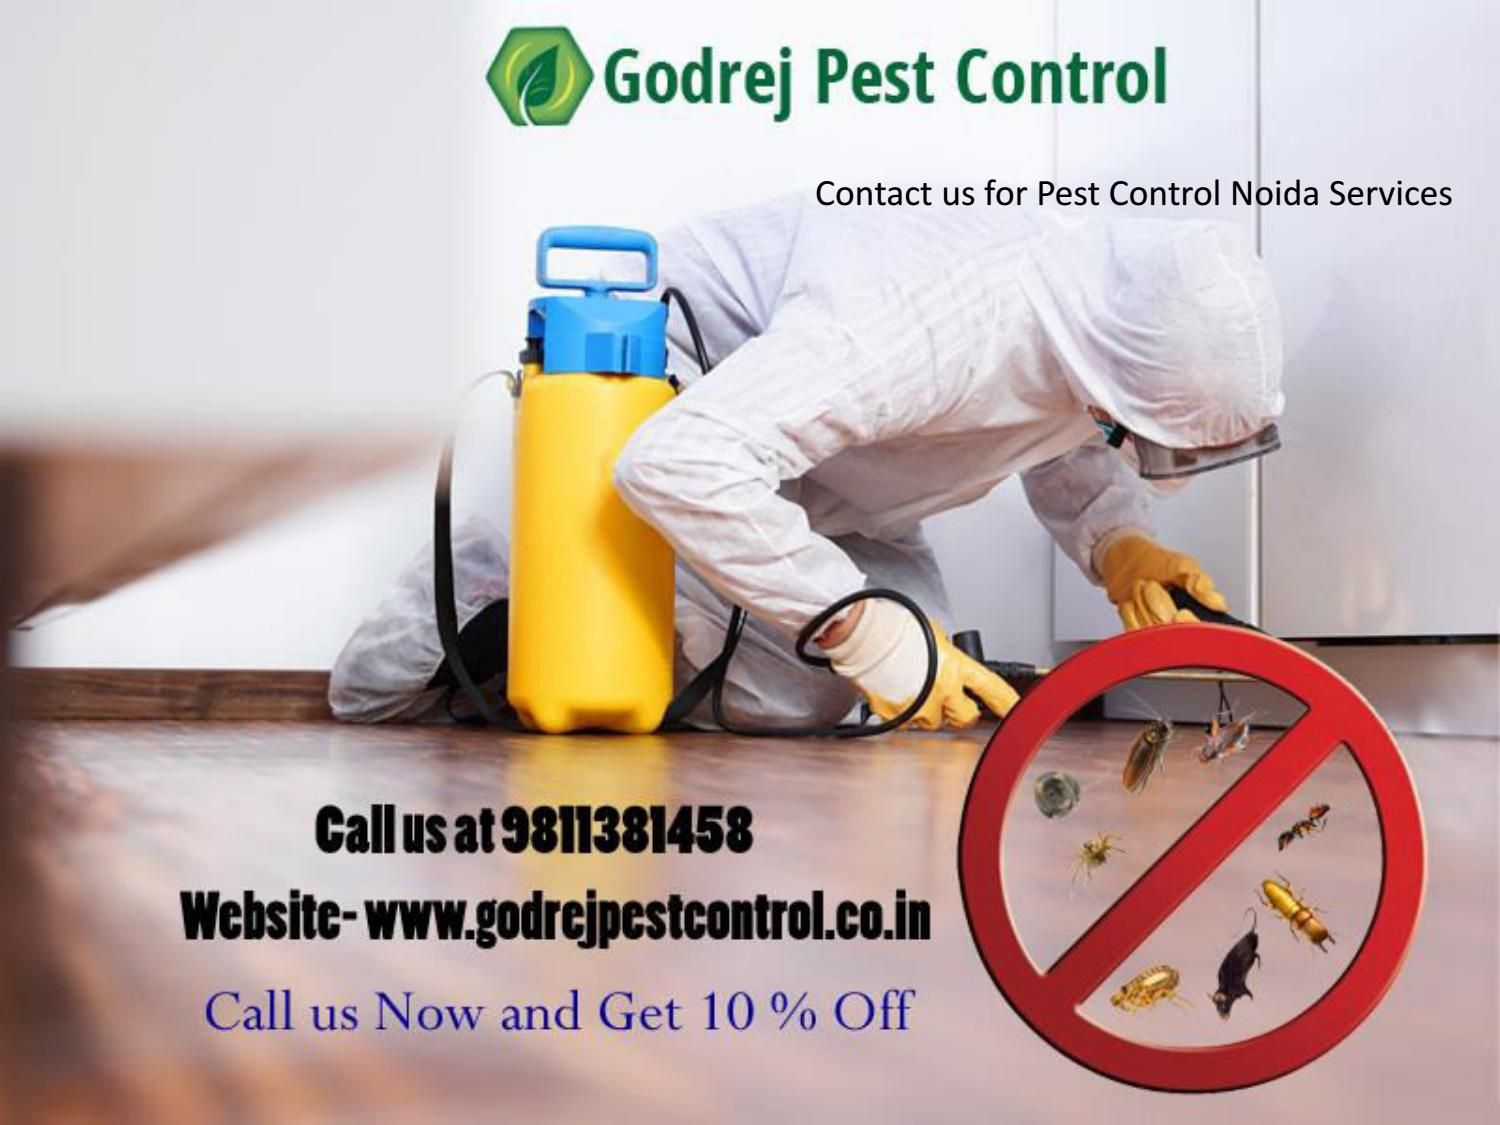 Contact Us For Pest Control Noida Services 9811381458 Pest Control Pest Control Services Contact Us